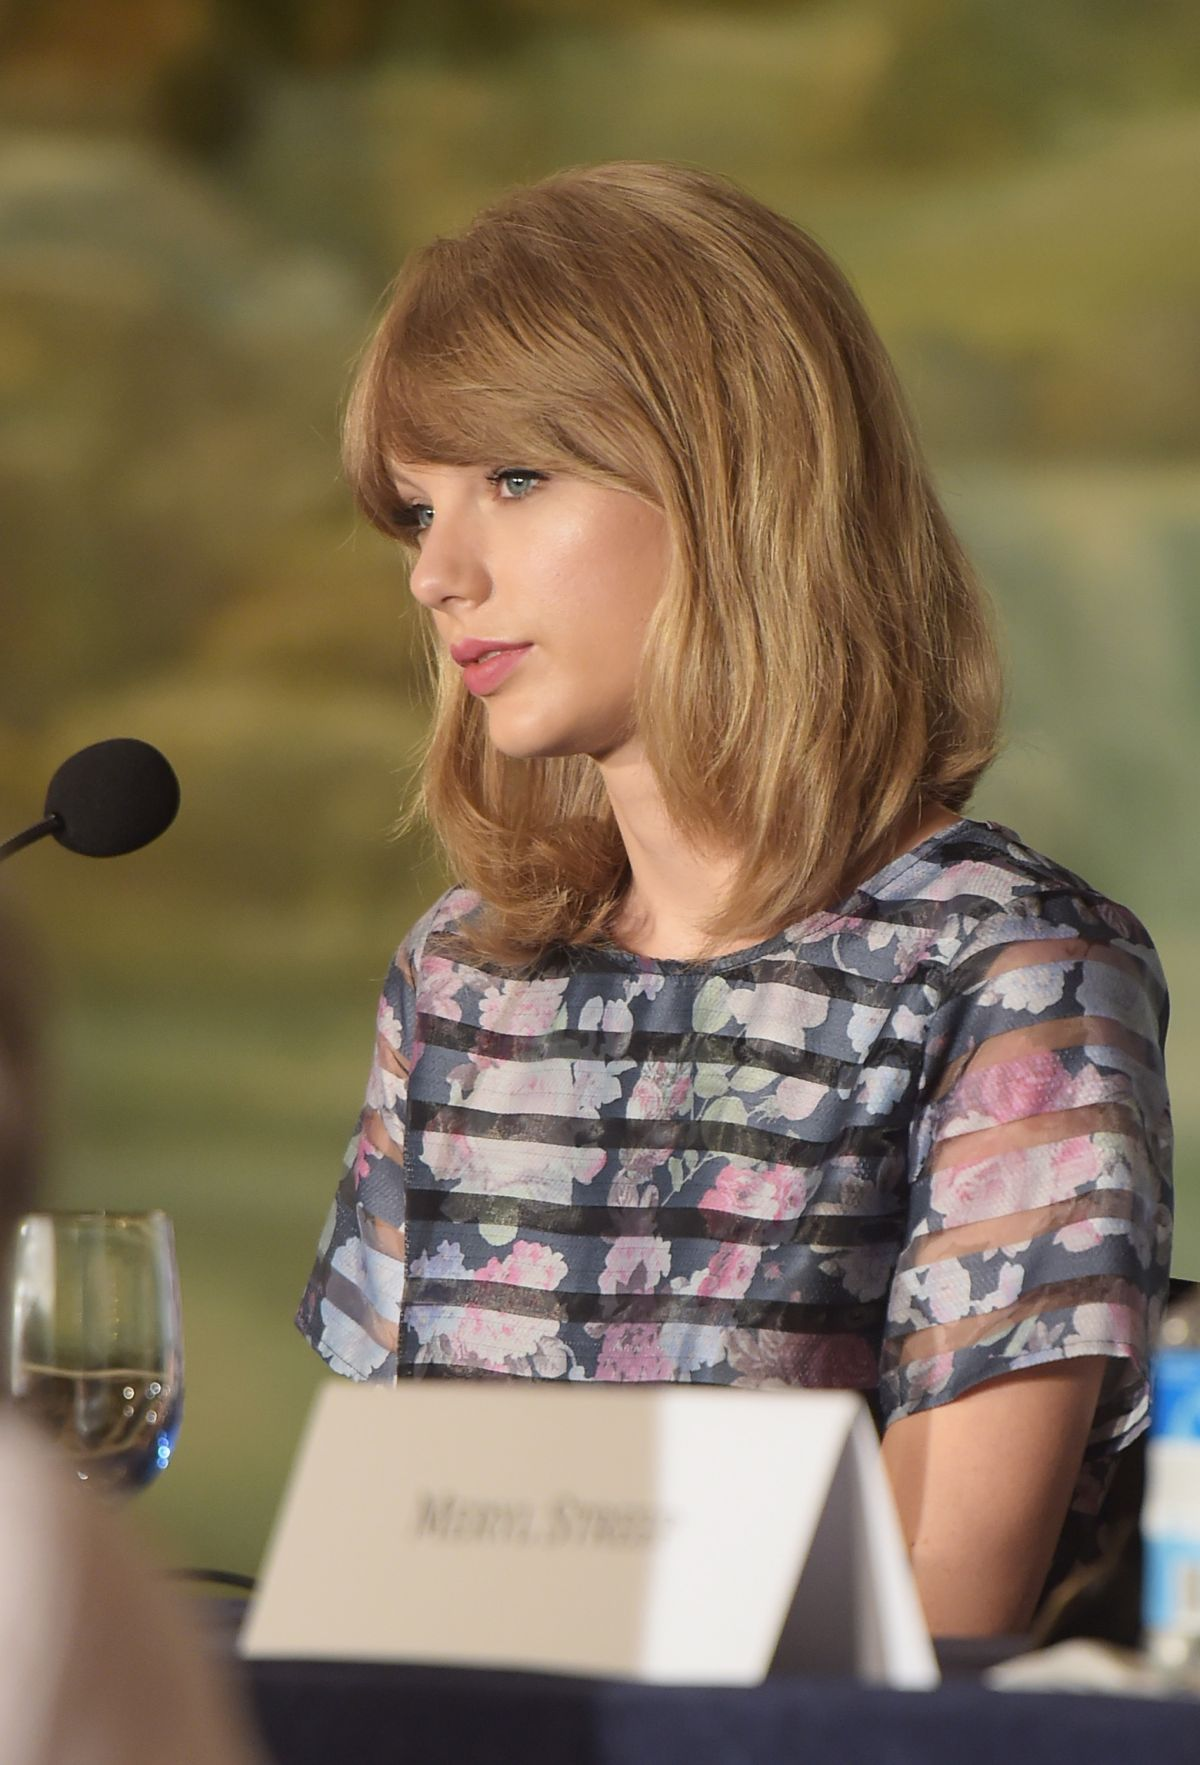 TAYLOR SWIFT At The Giver Press Conference In New York HawtCelebs